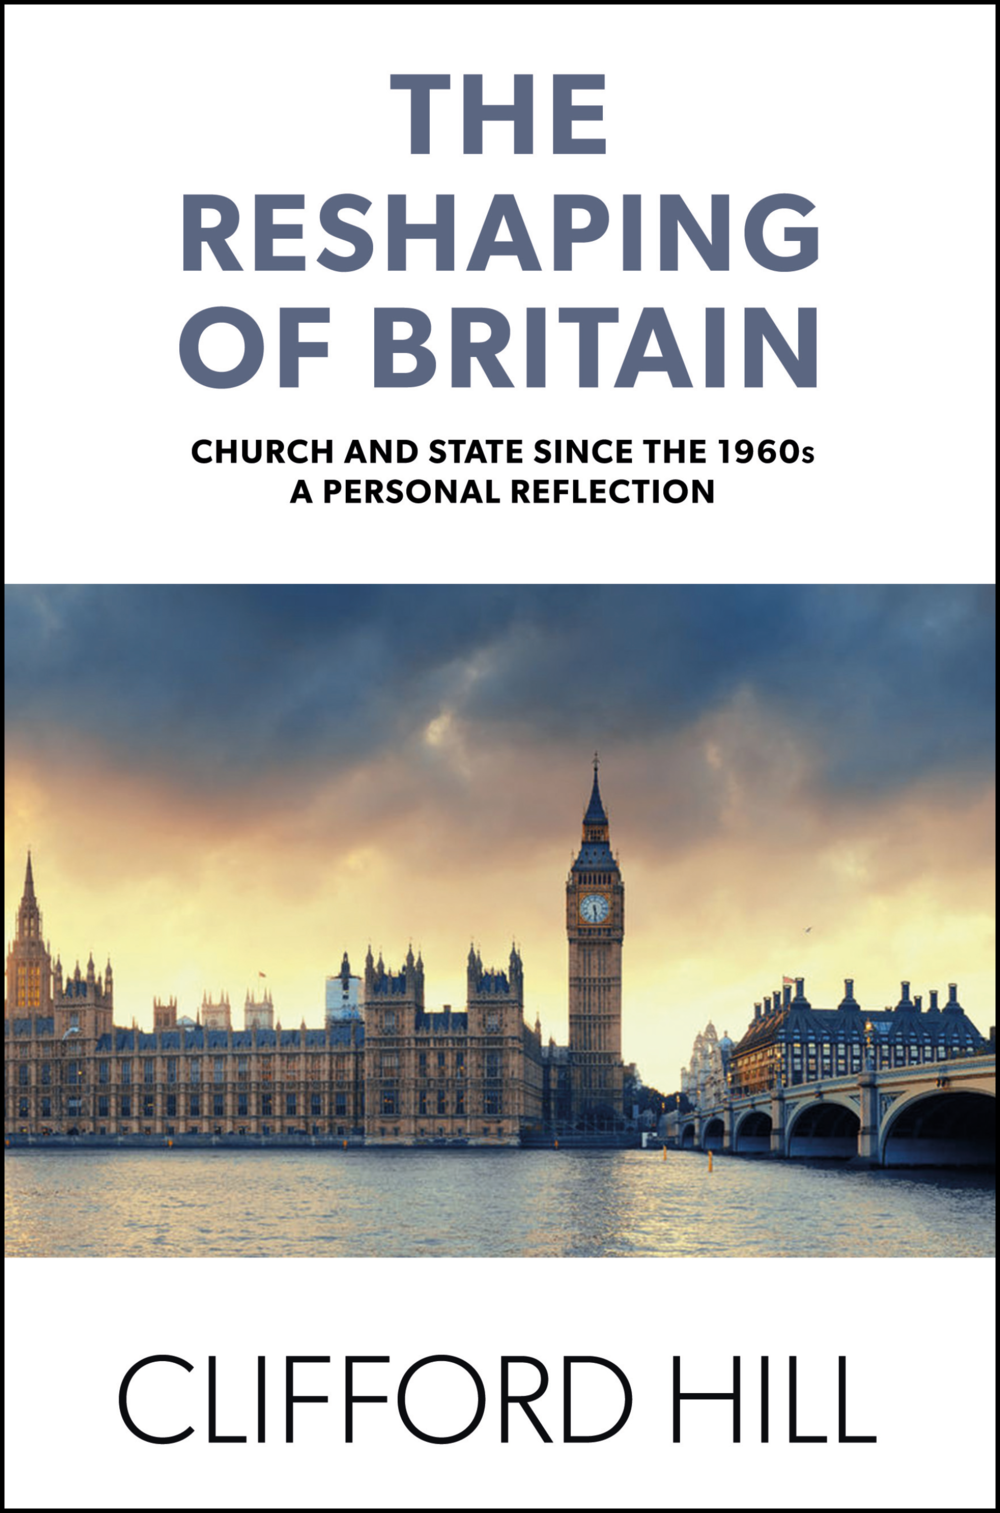 £12.99 - e-book: £5.99Published: October 2018346 pagesISBN: 978-0-9956832-9-7